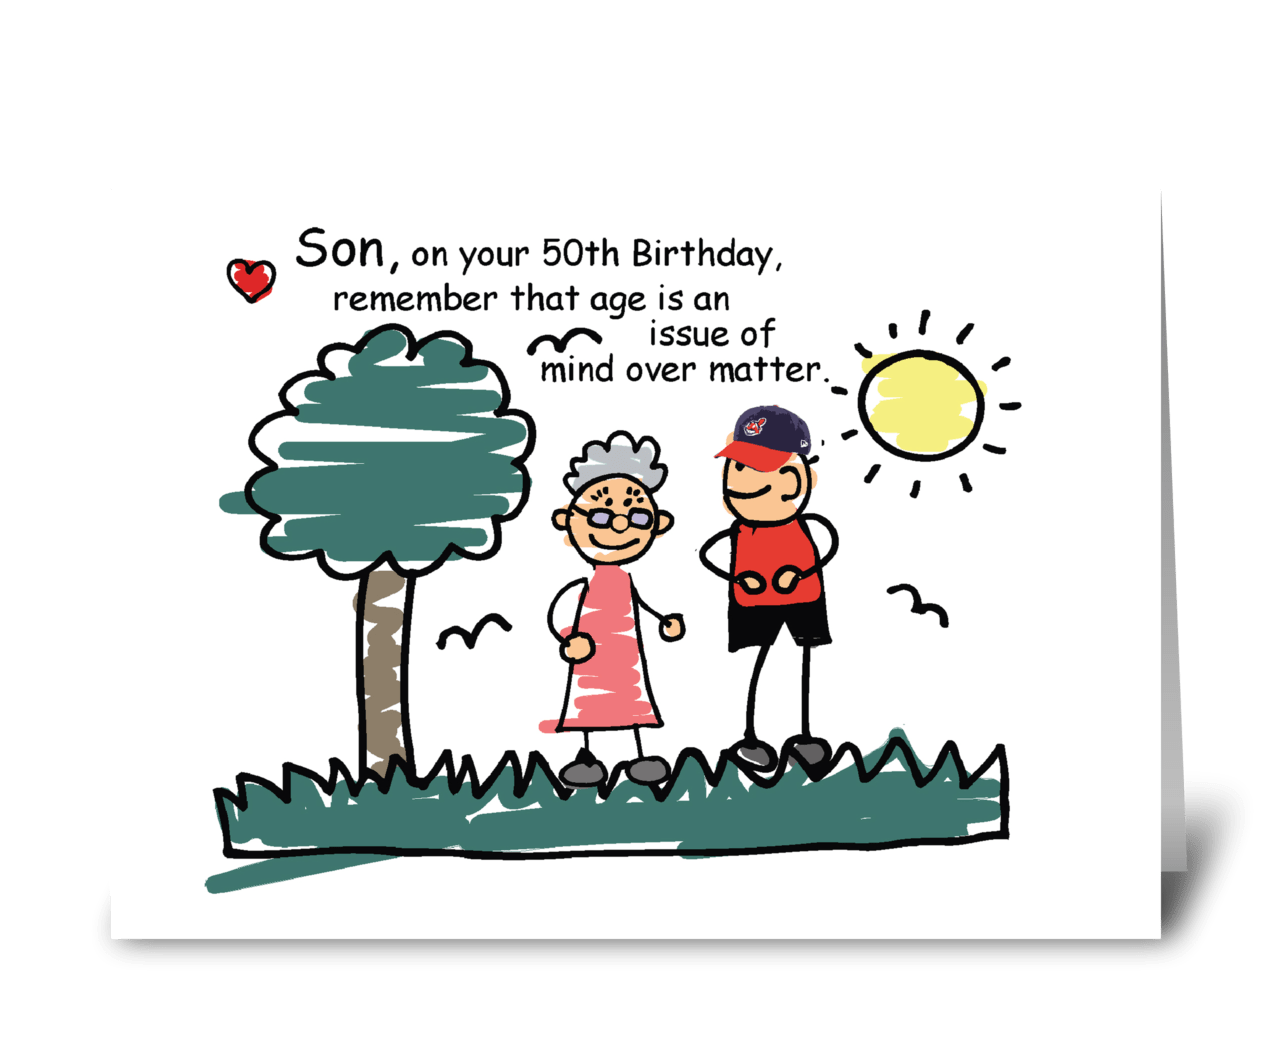 Sensational Son 50Th Birthday Humorous Stick Figures Send This Greeting Card Personalised Birthday Cards Paralily Jamesorg